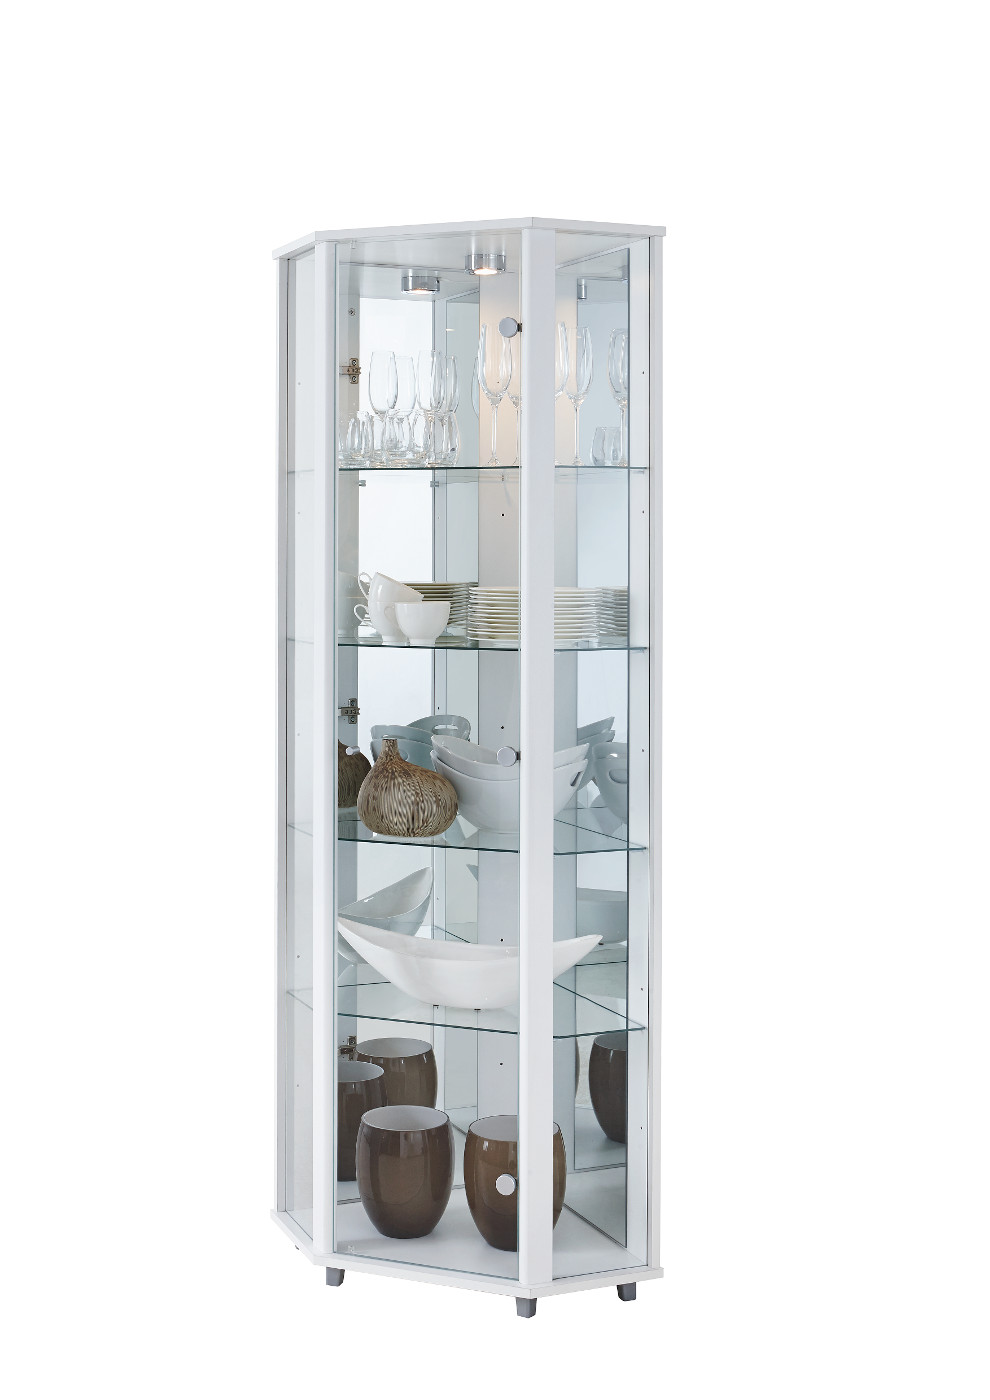 eckvitrine vitrine glasvitrine wei. Black Bedroom Furniture Sets. Home Design Ideas